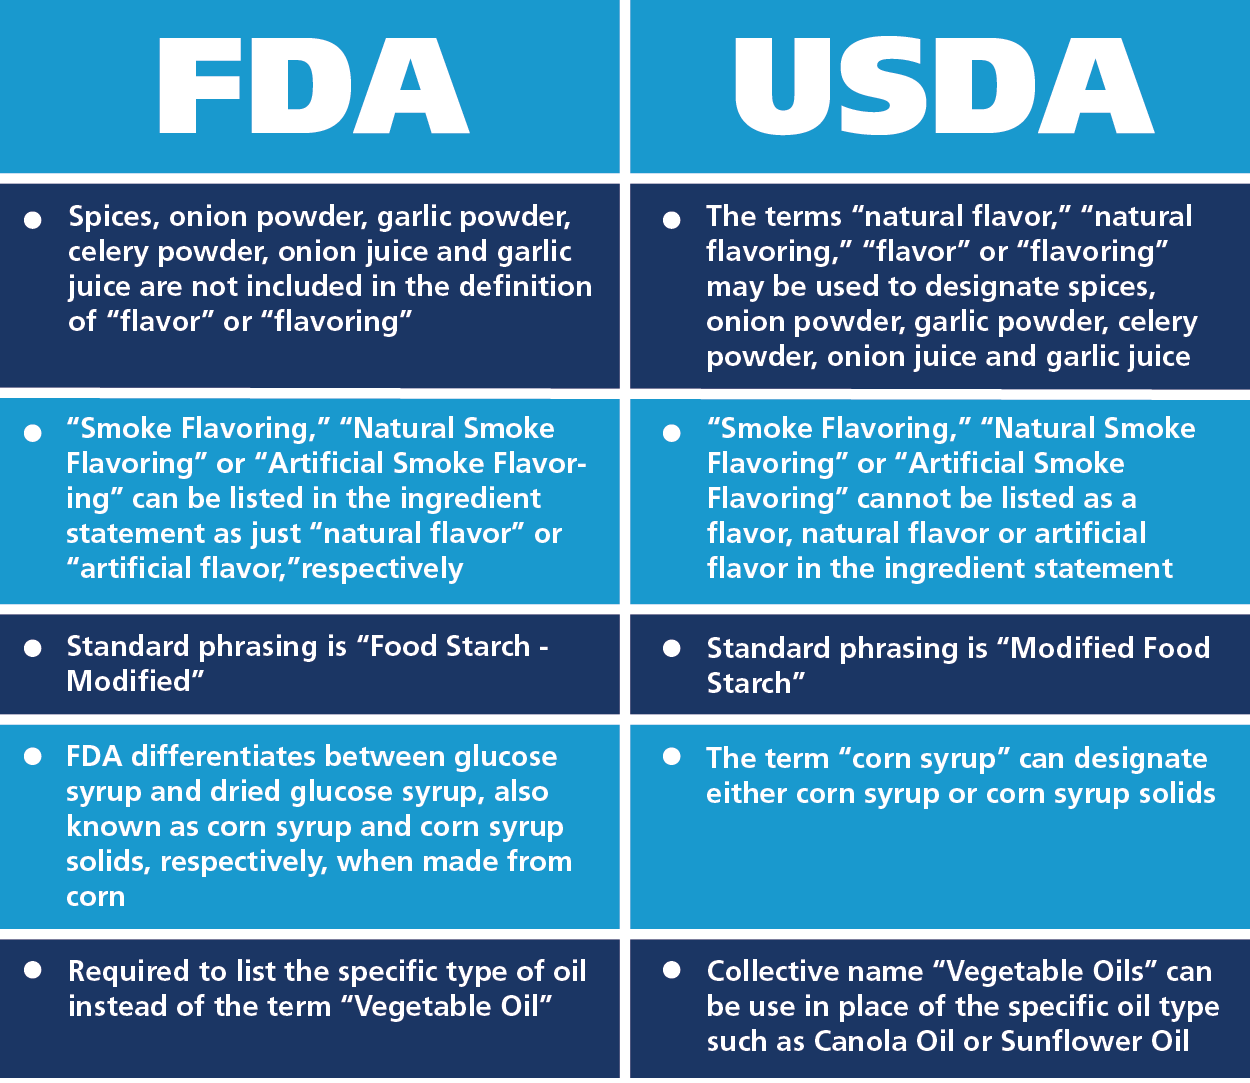 understanding key usda and fda food labeling differences: part two